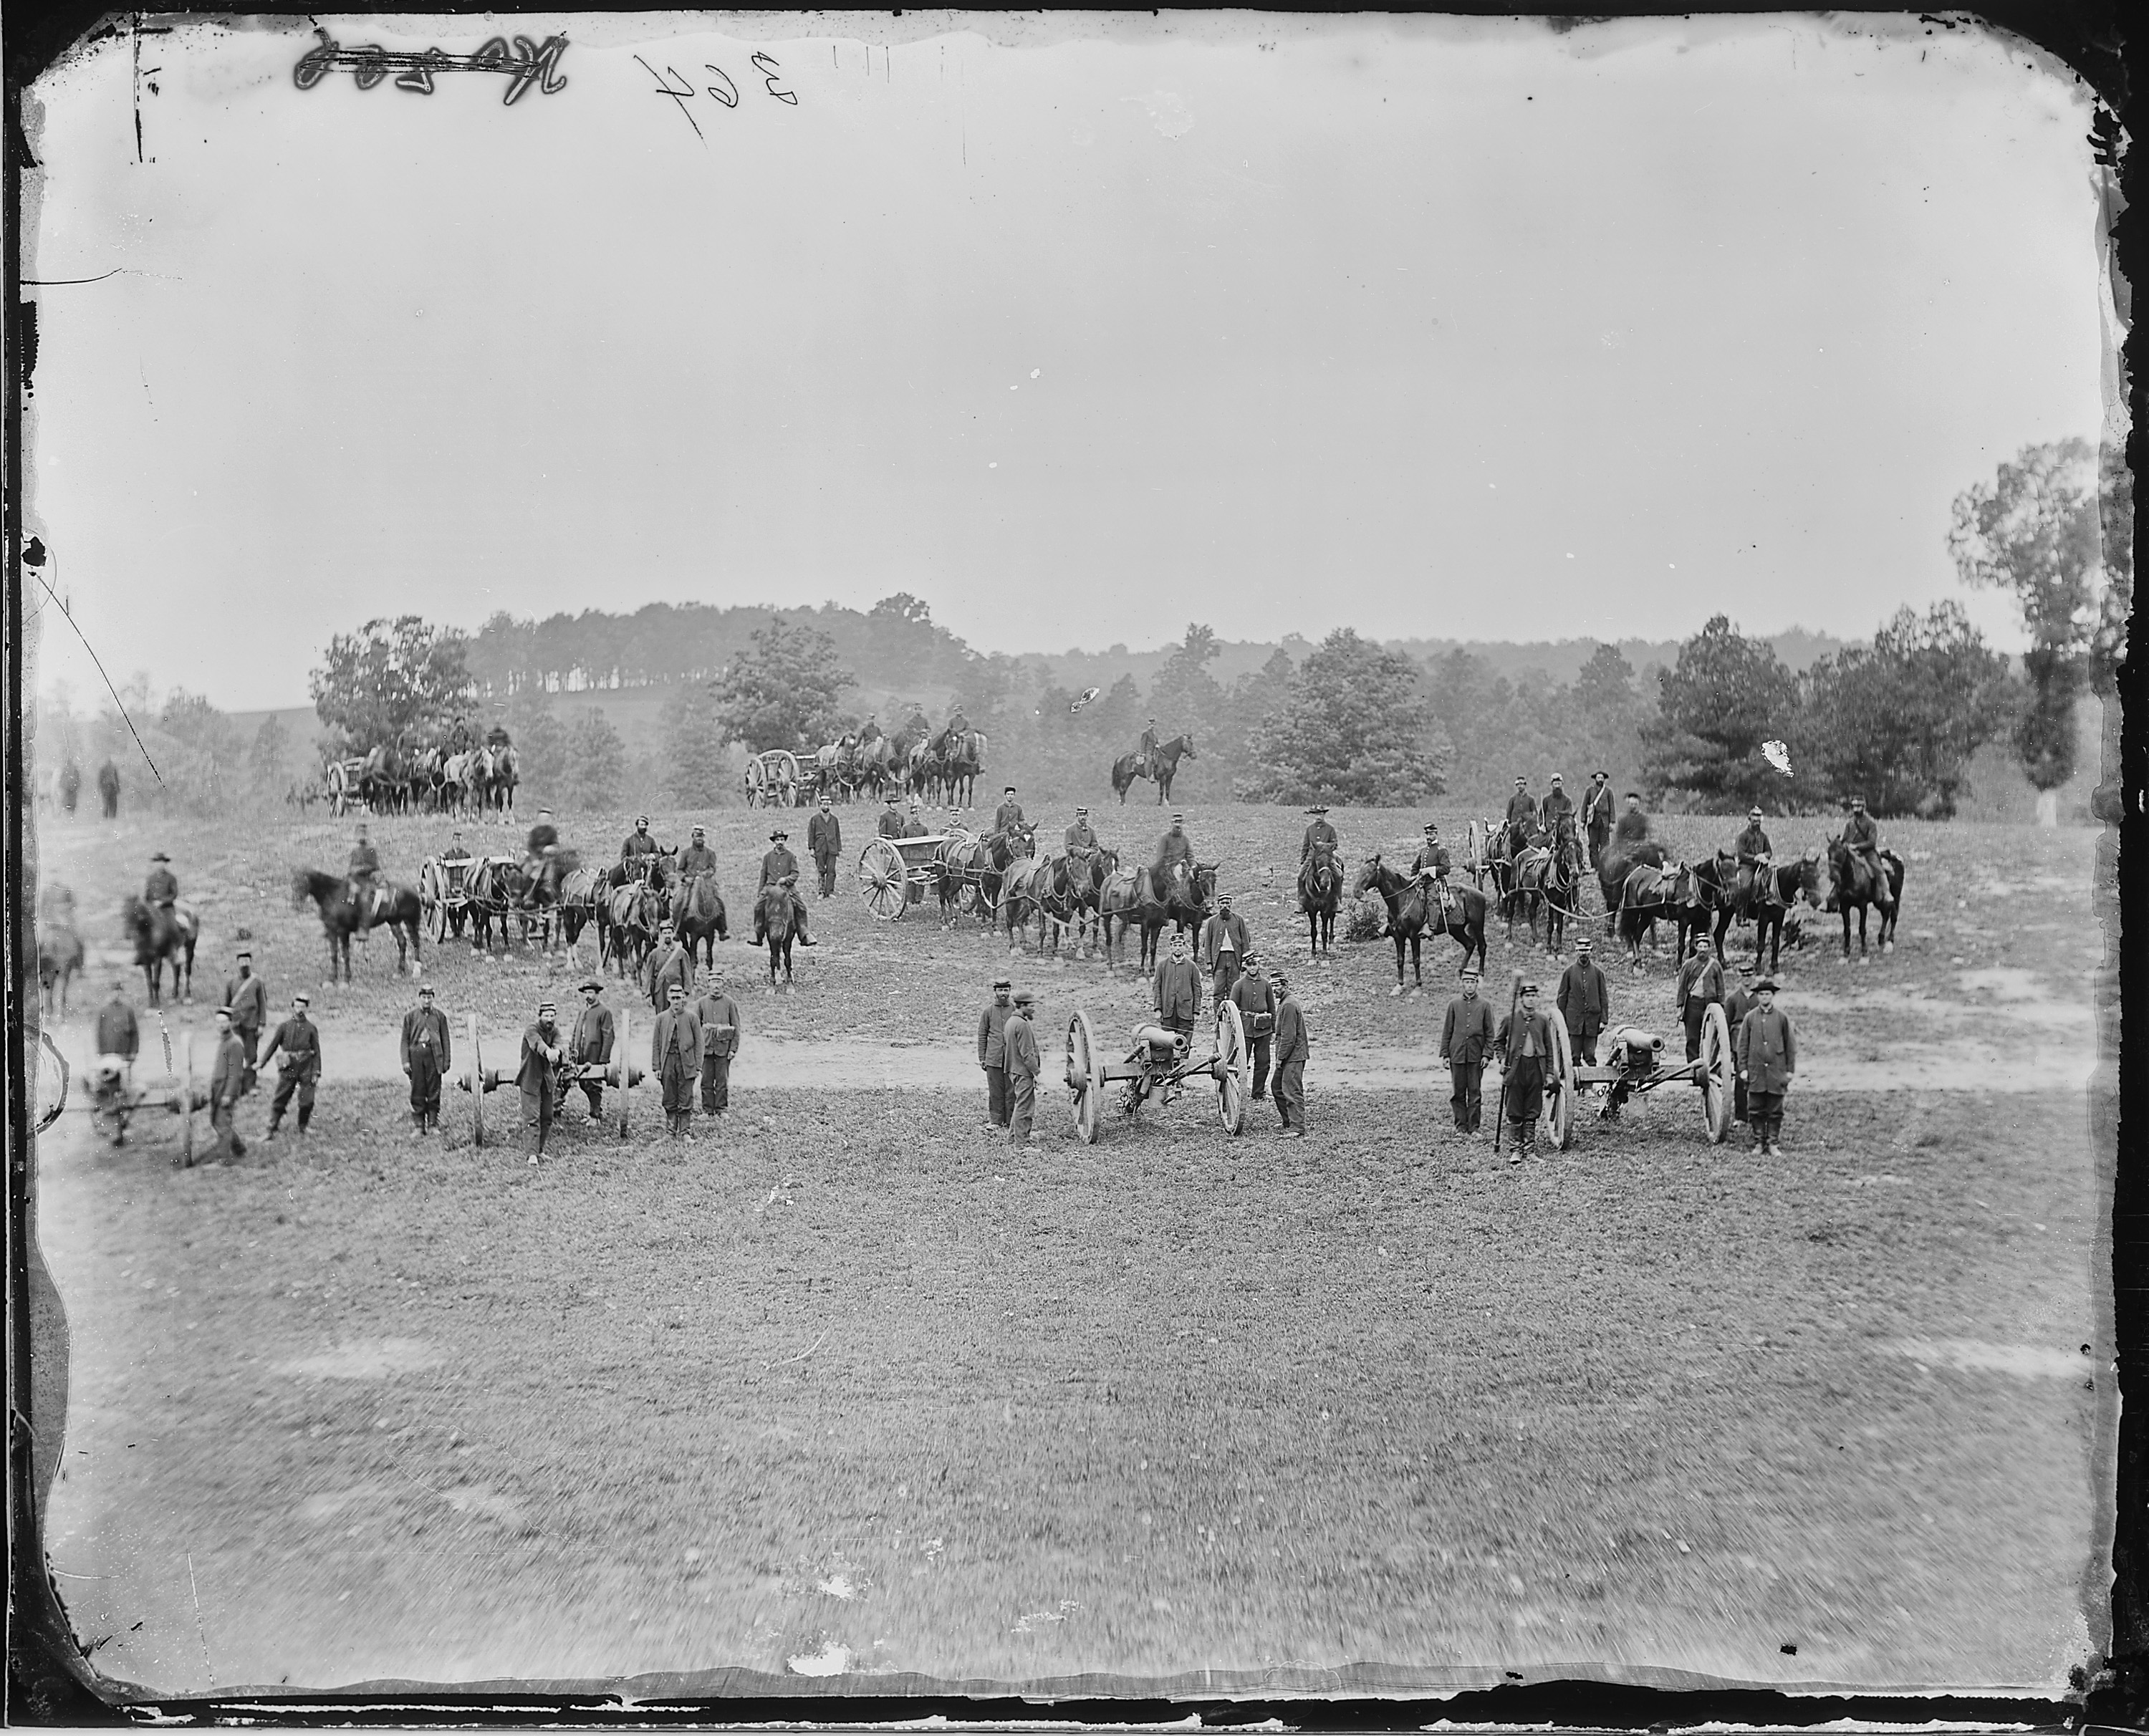 The Civil War as Photographed by Mathew